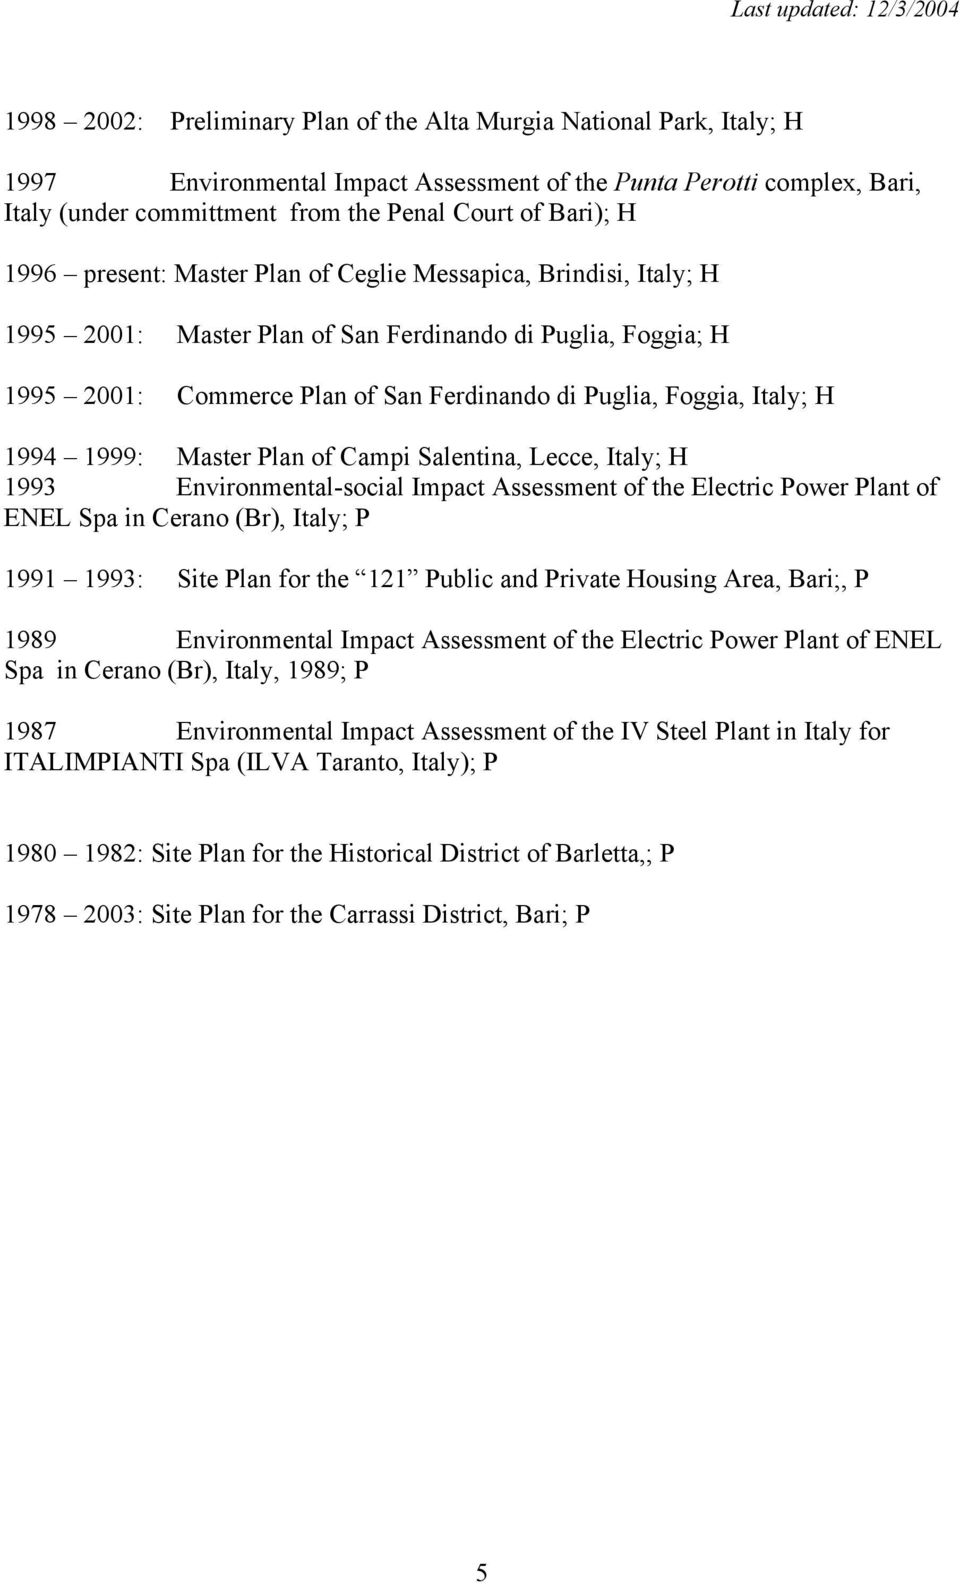 H 1994 1999: Master Plan of Campi Salentina, Lecce, Italy; H 1993 Environmental-social Impact Assessment of the Electric Power Plant of ENEL Spa in Cerano (Br), Italy; P 1991 1993: Site Plan for the